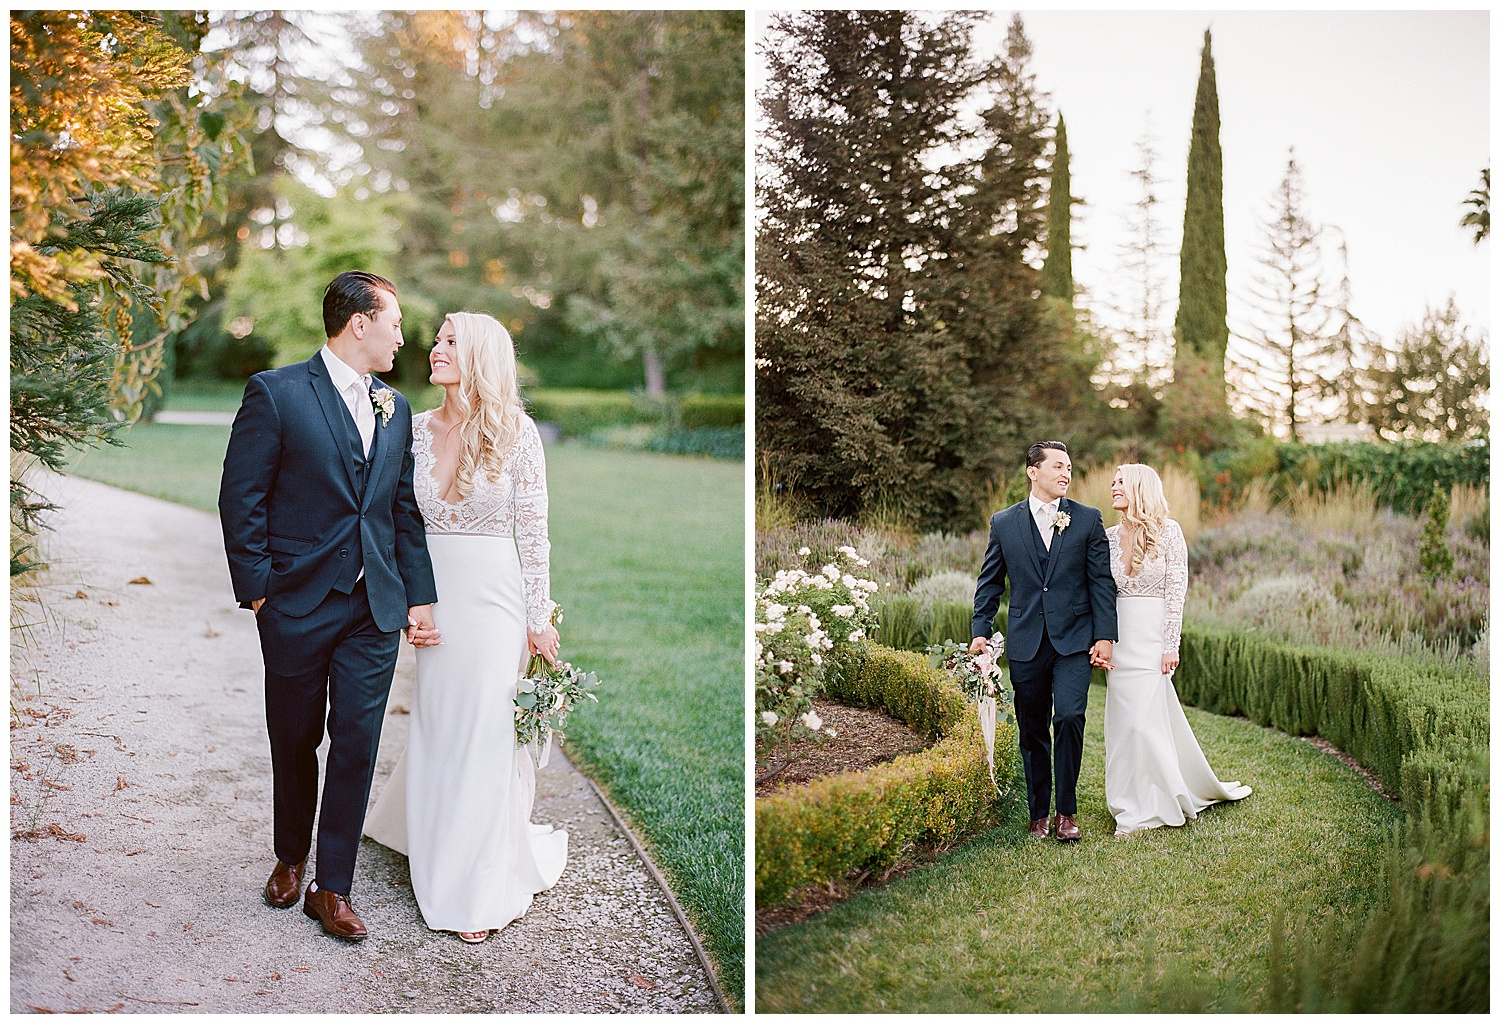 Janine_Licare_Photography_San_Francisco_Wedding_Photographer_Carneros_Tyge_Williams_Sonoma_Napa_0221.jpg